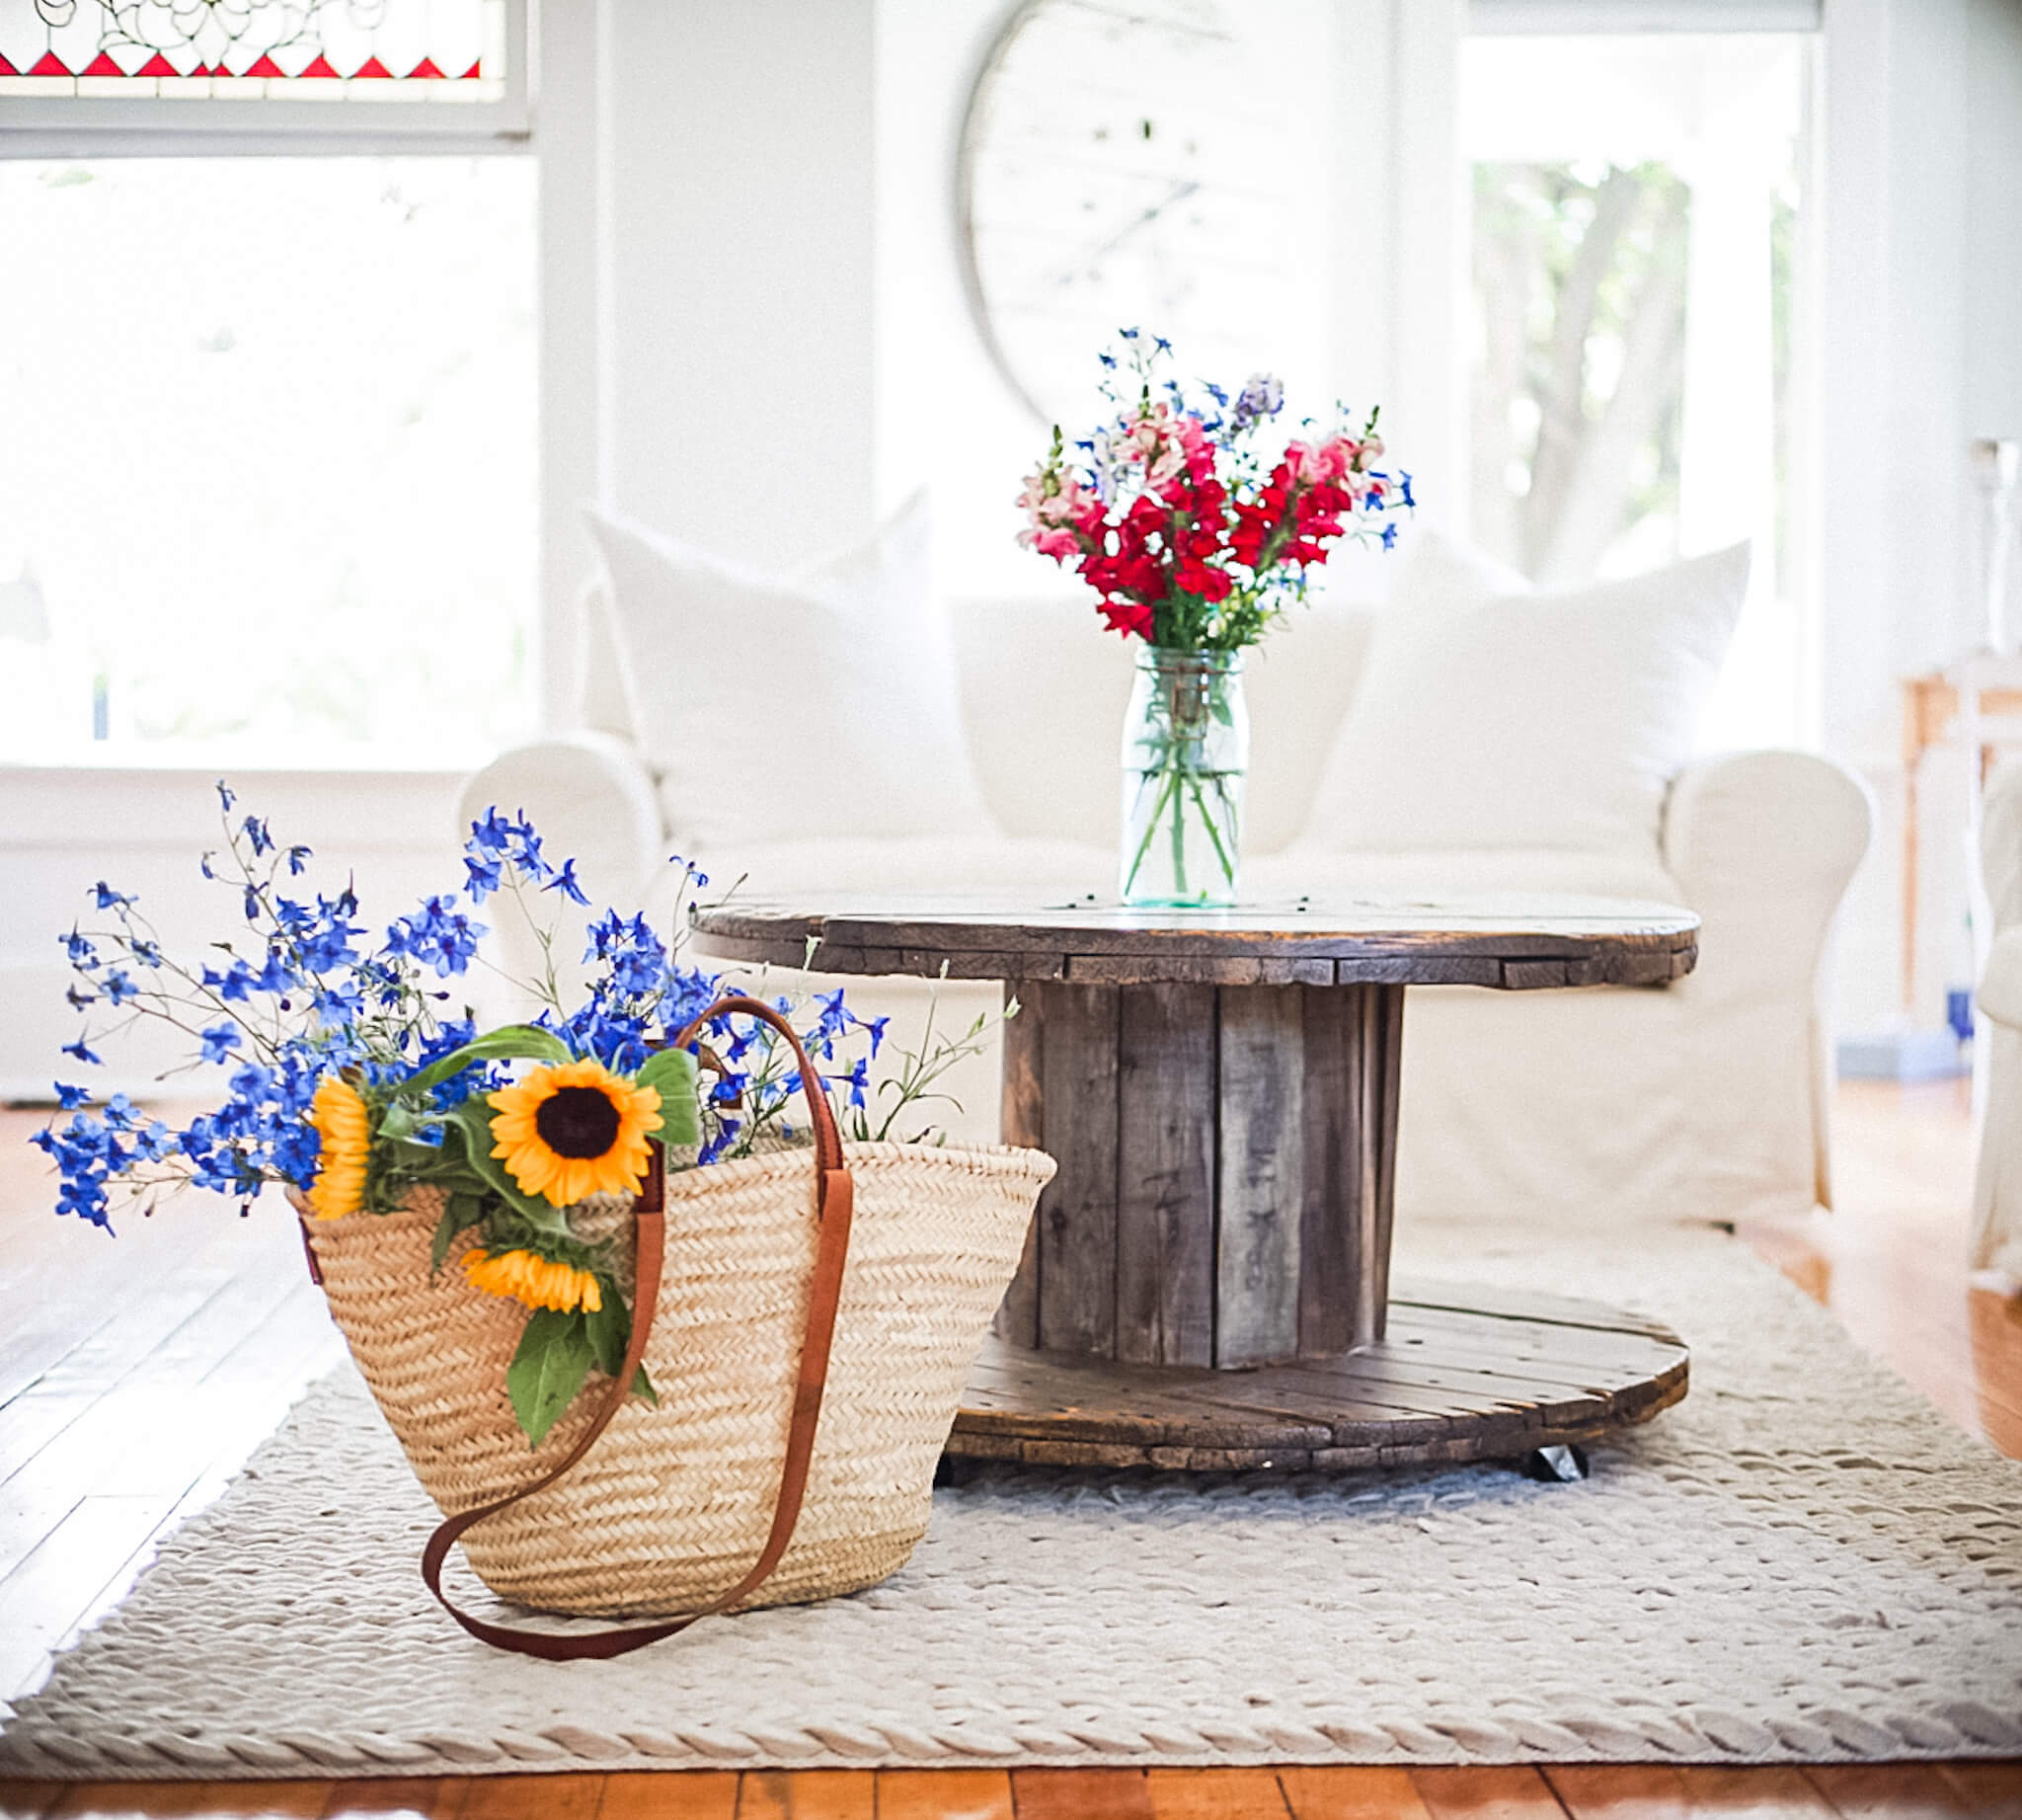 Spool farmhouse coffee table market basket full of fall flowers